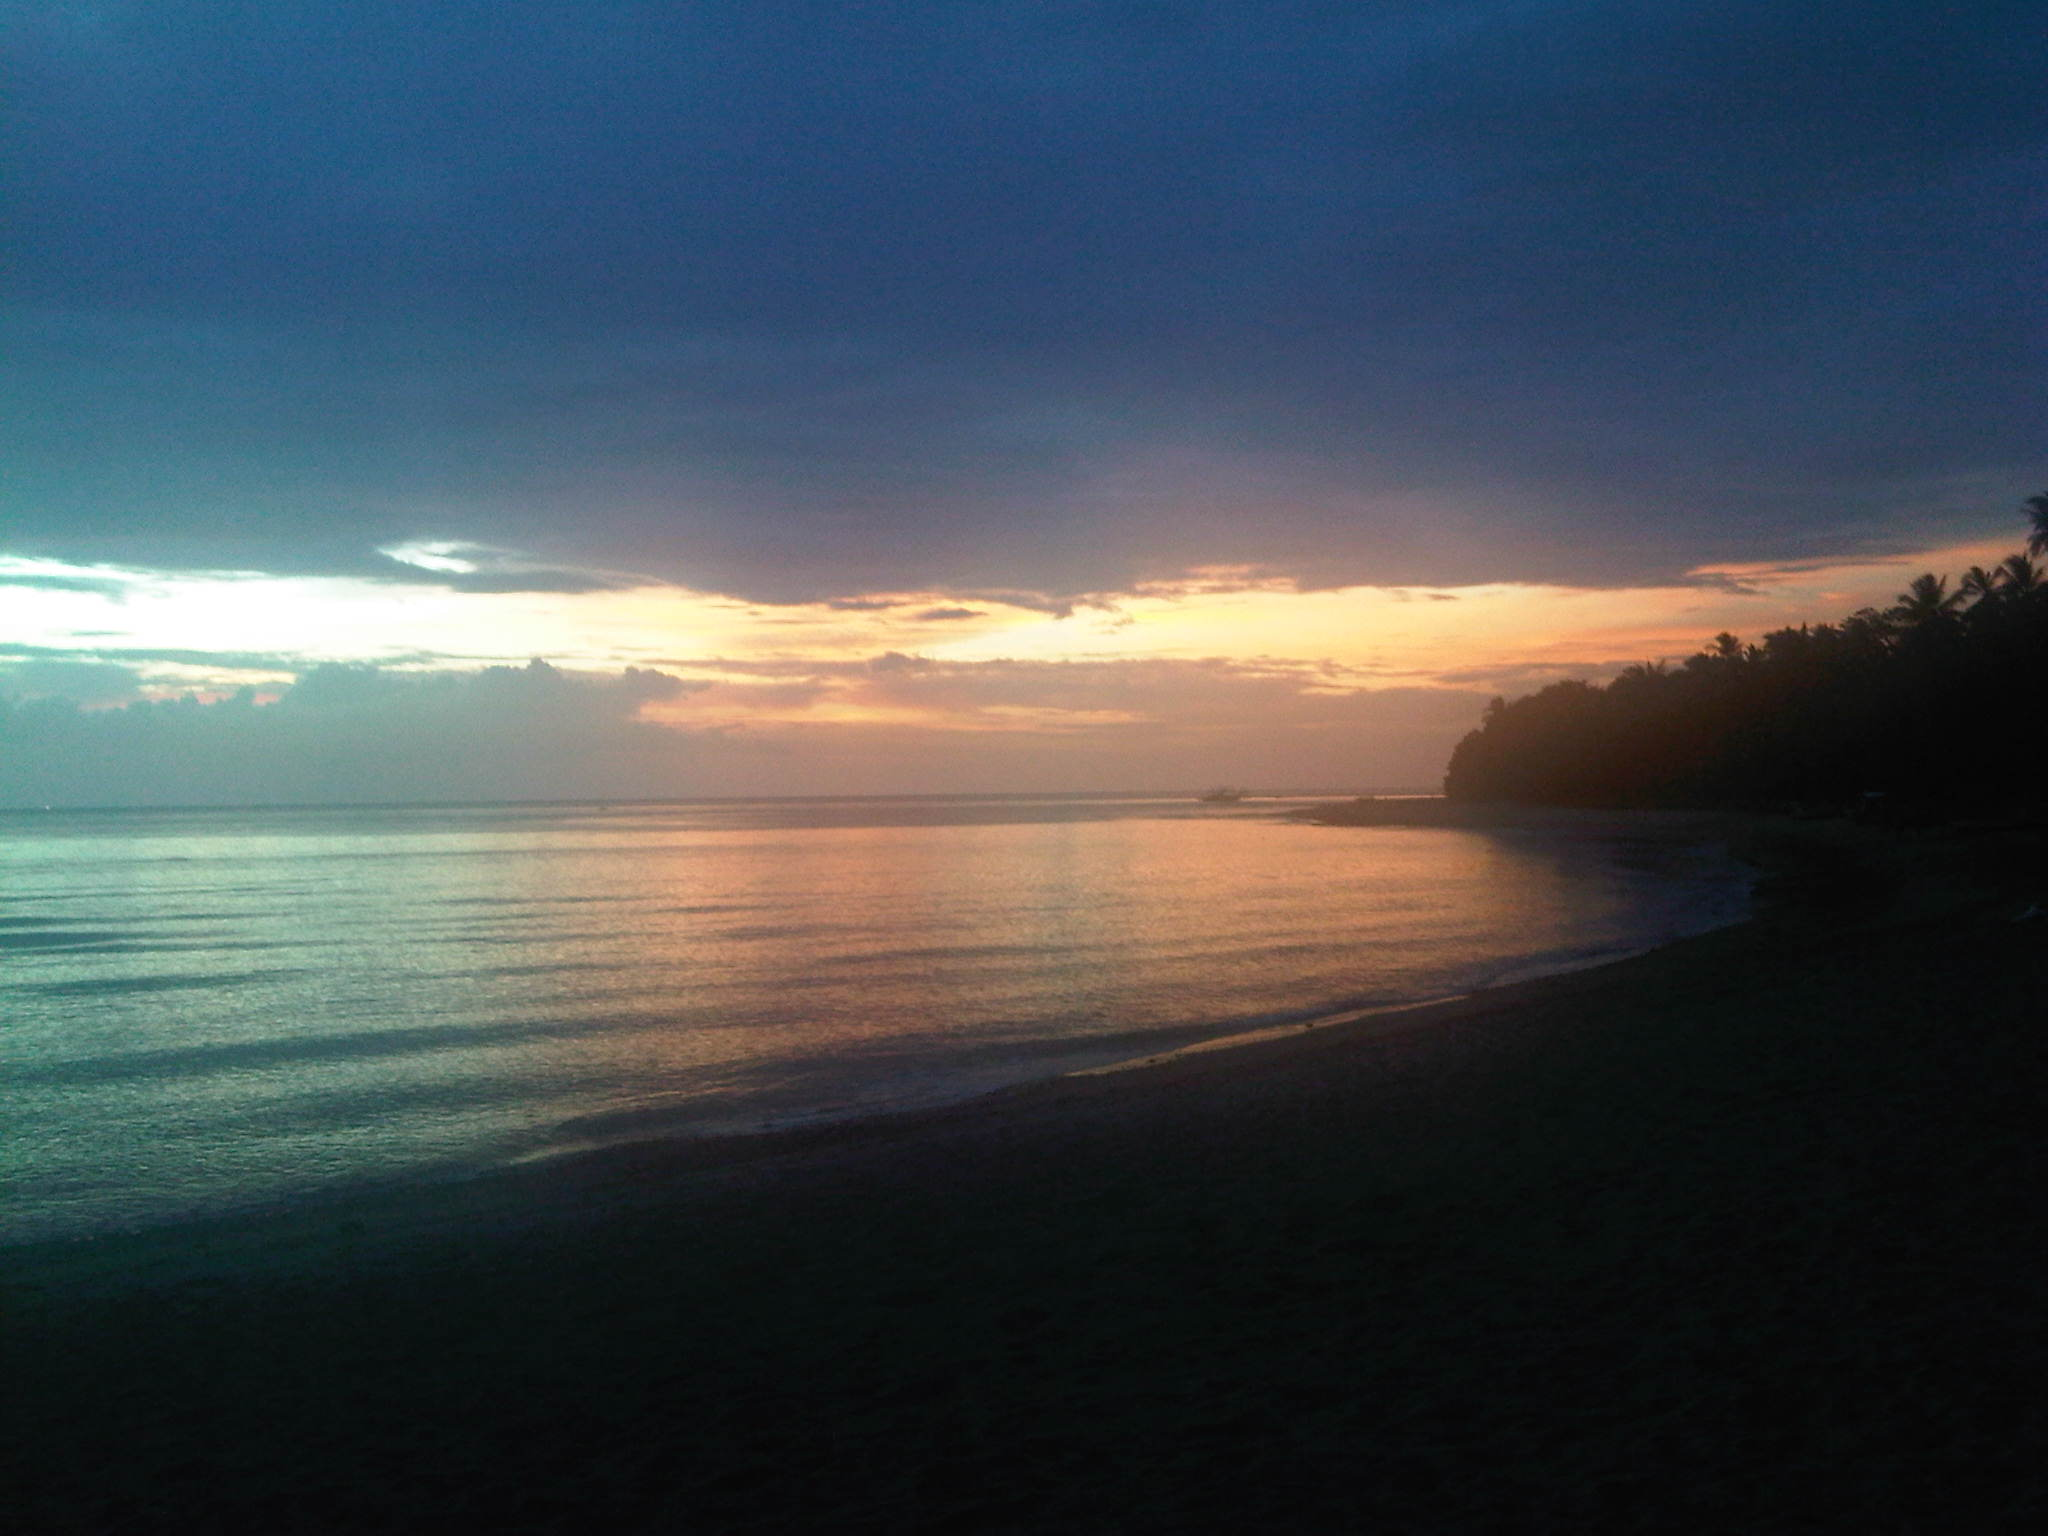 sunset shot from Funtasea Resort Basay